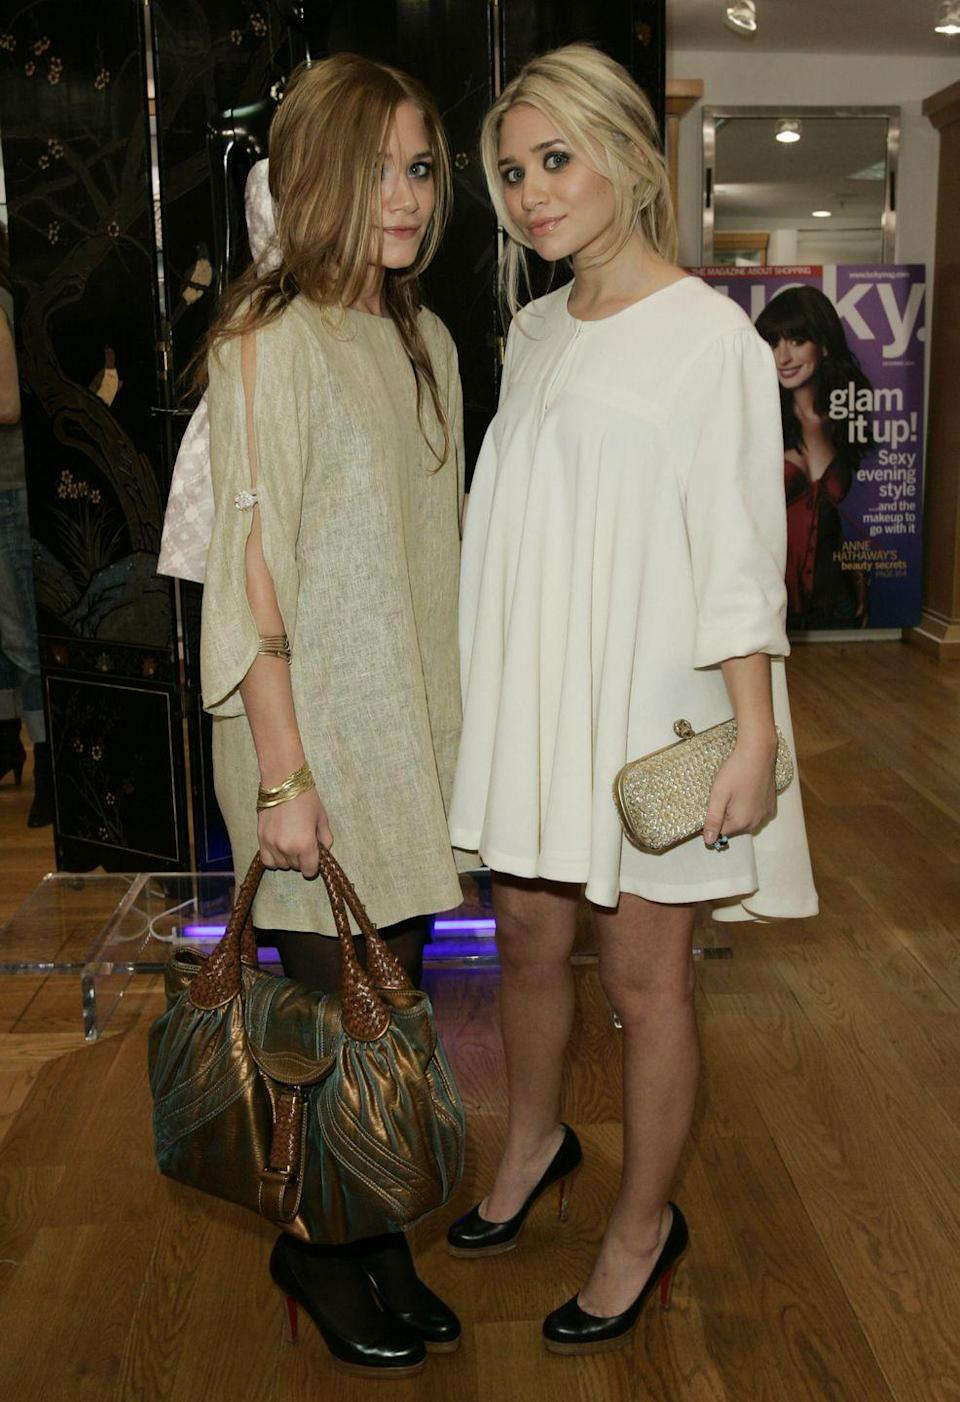 <p>Mary-Kate Olsen and Ashley Olsen were fixtures of the fashion world long before becoming designers themselves. Their neutral cocktail dresses bring the feel of summer to the next season.</p>